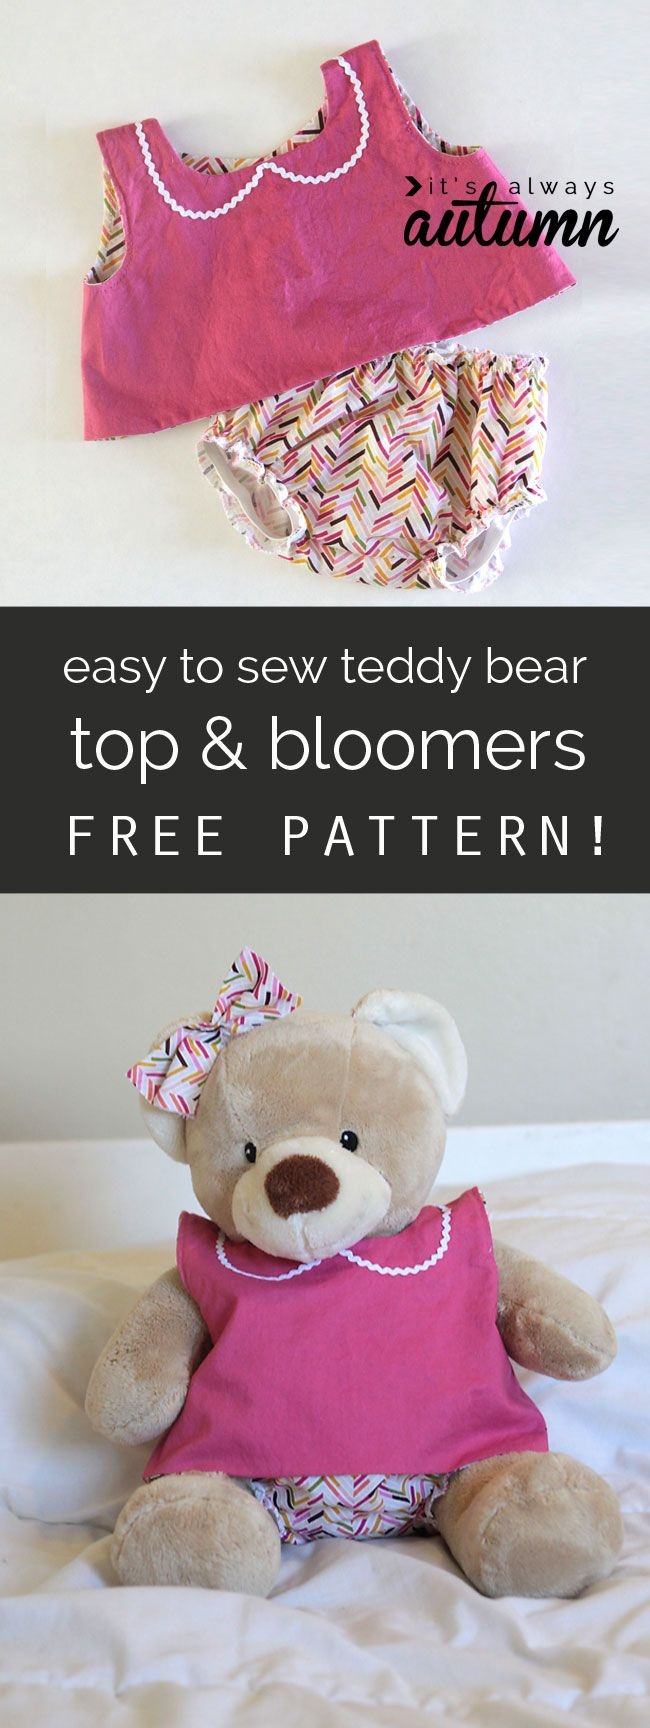 Free Pattern For Easy To Sew Teddy Bear Clothes (Build-A-Bear | Doll - Free Printable Teddy Bear Clothes Patterns